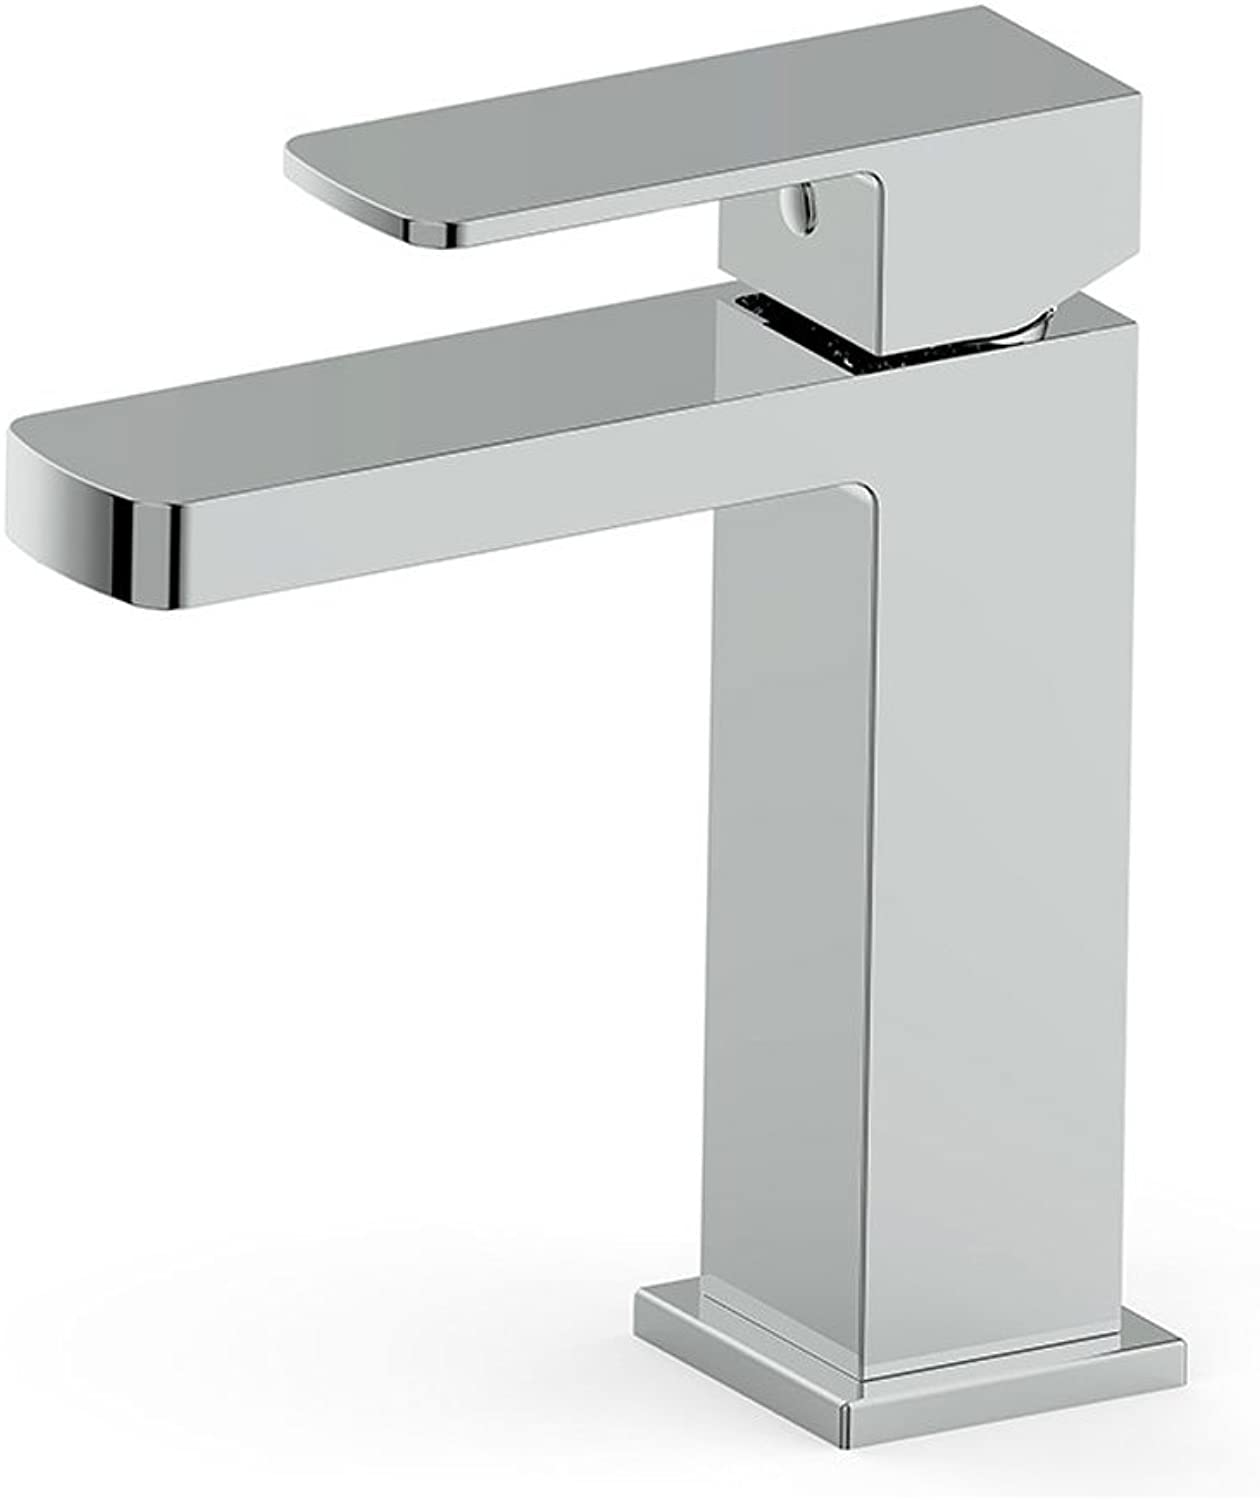 BHJqsy Bathroom Fixtures Single-connected faucet, hot and cold water mixing basin faucet washbasin bathroom faucet Stainless Steel